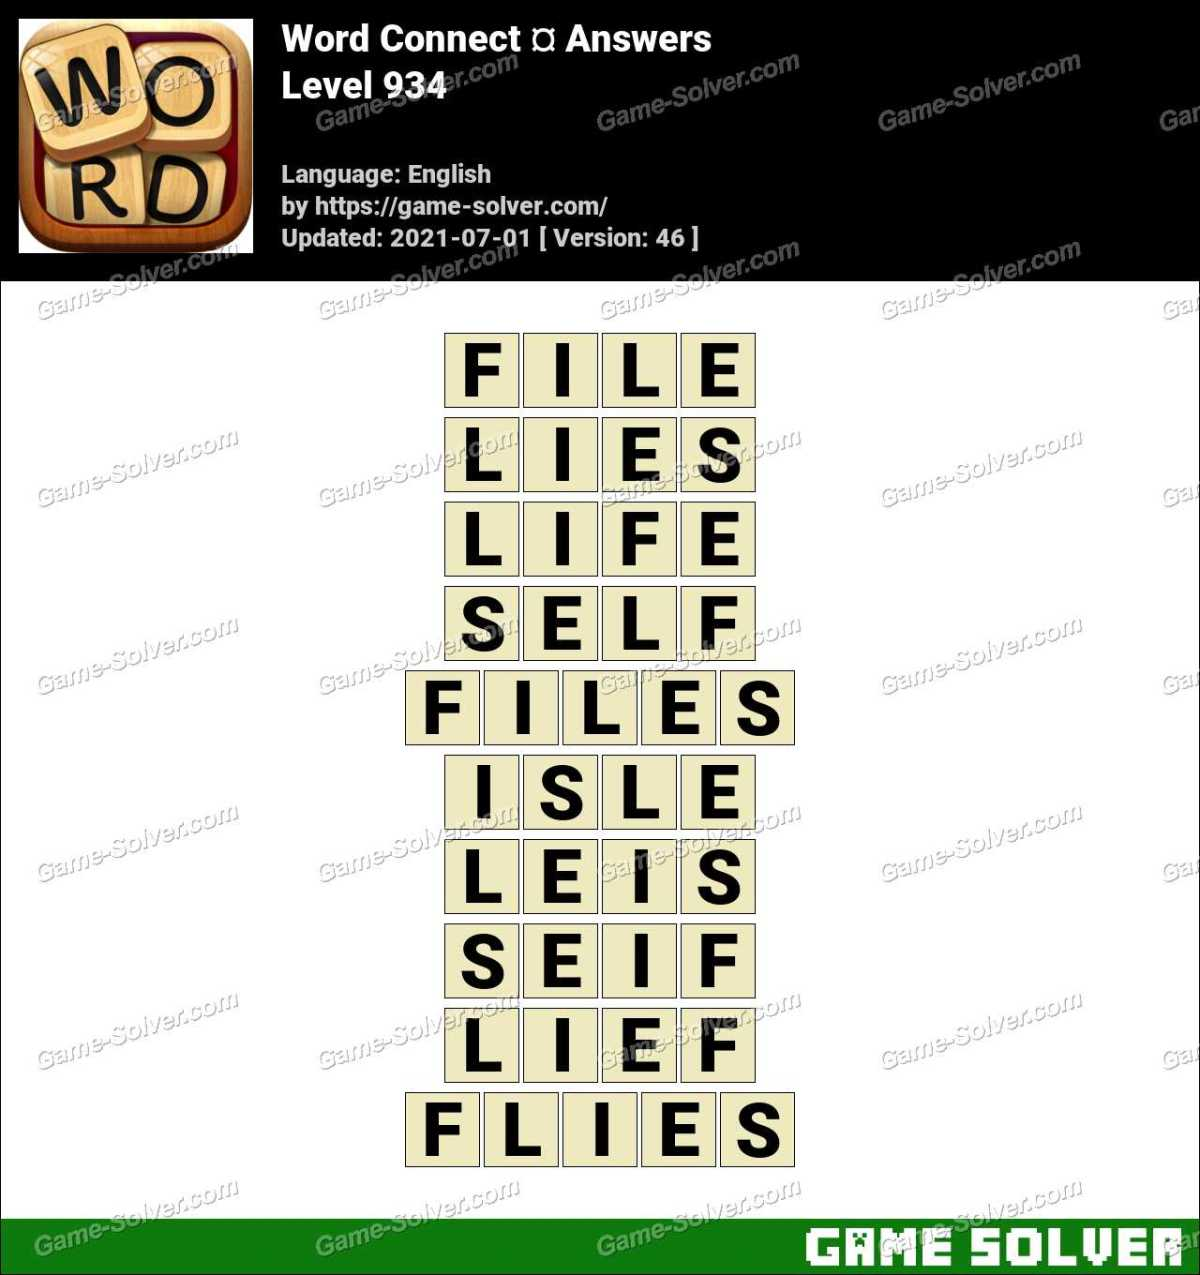 Word Connect Level 934 Answers